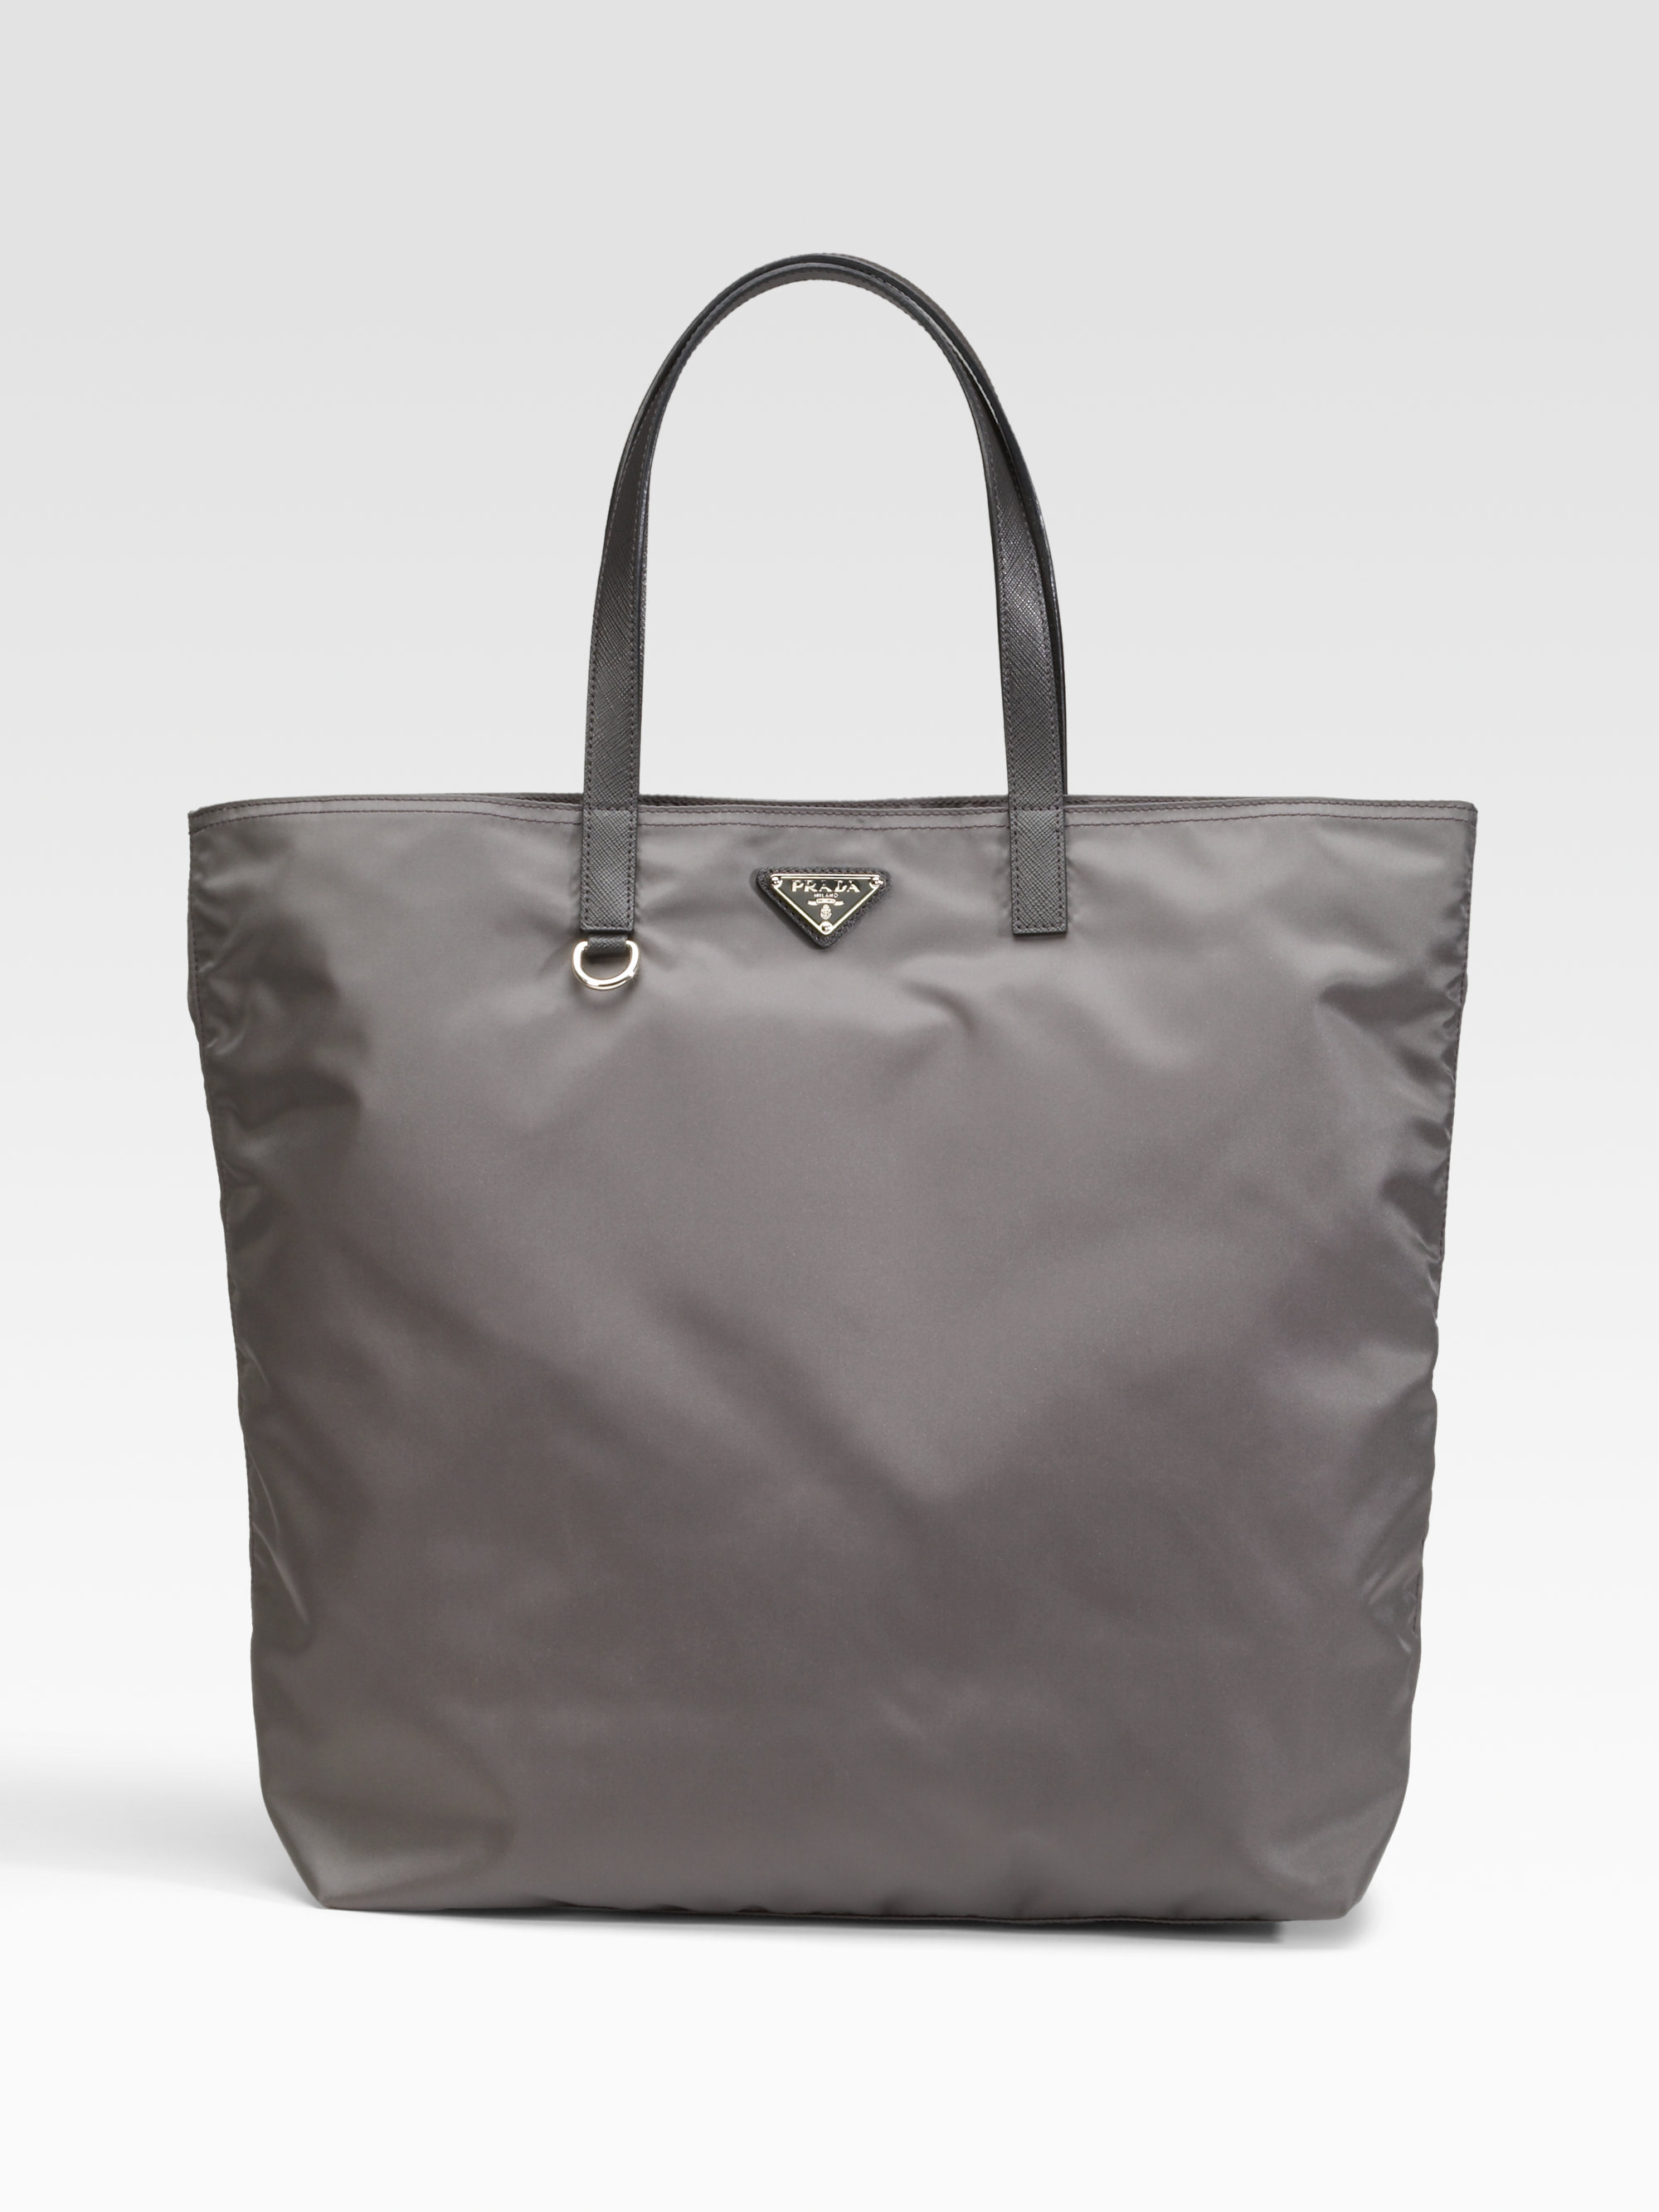 efba82f7d1 ... new style lyst prada vela nylon tote bag in gray 2e462 f40eb